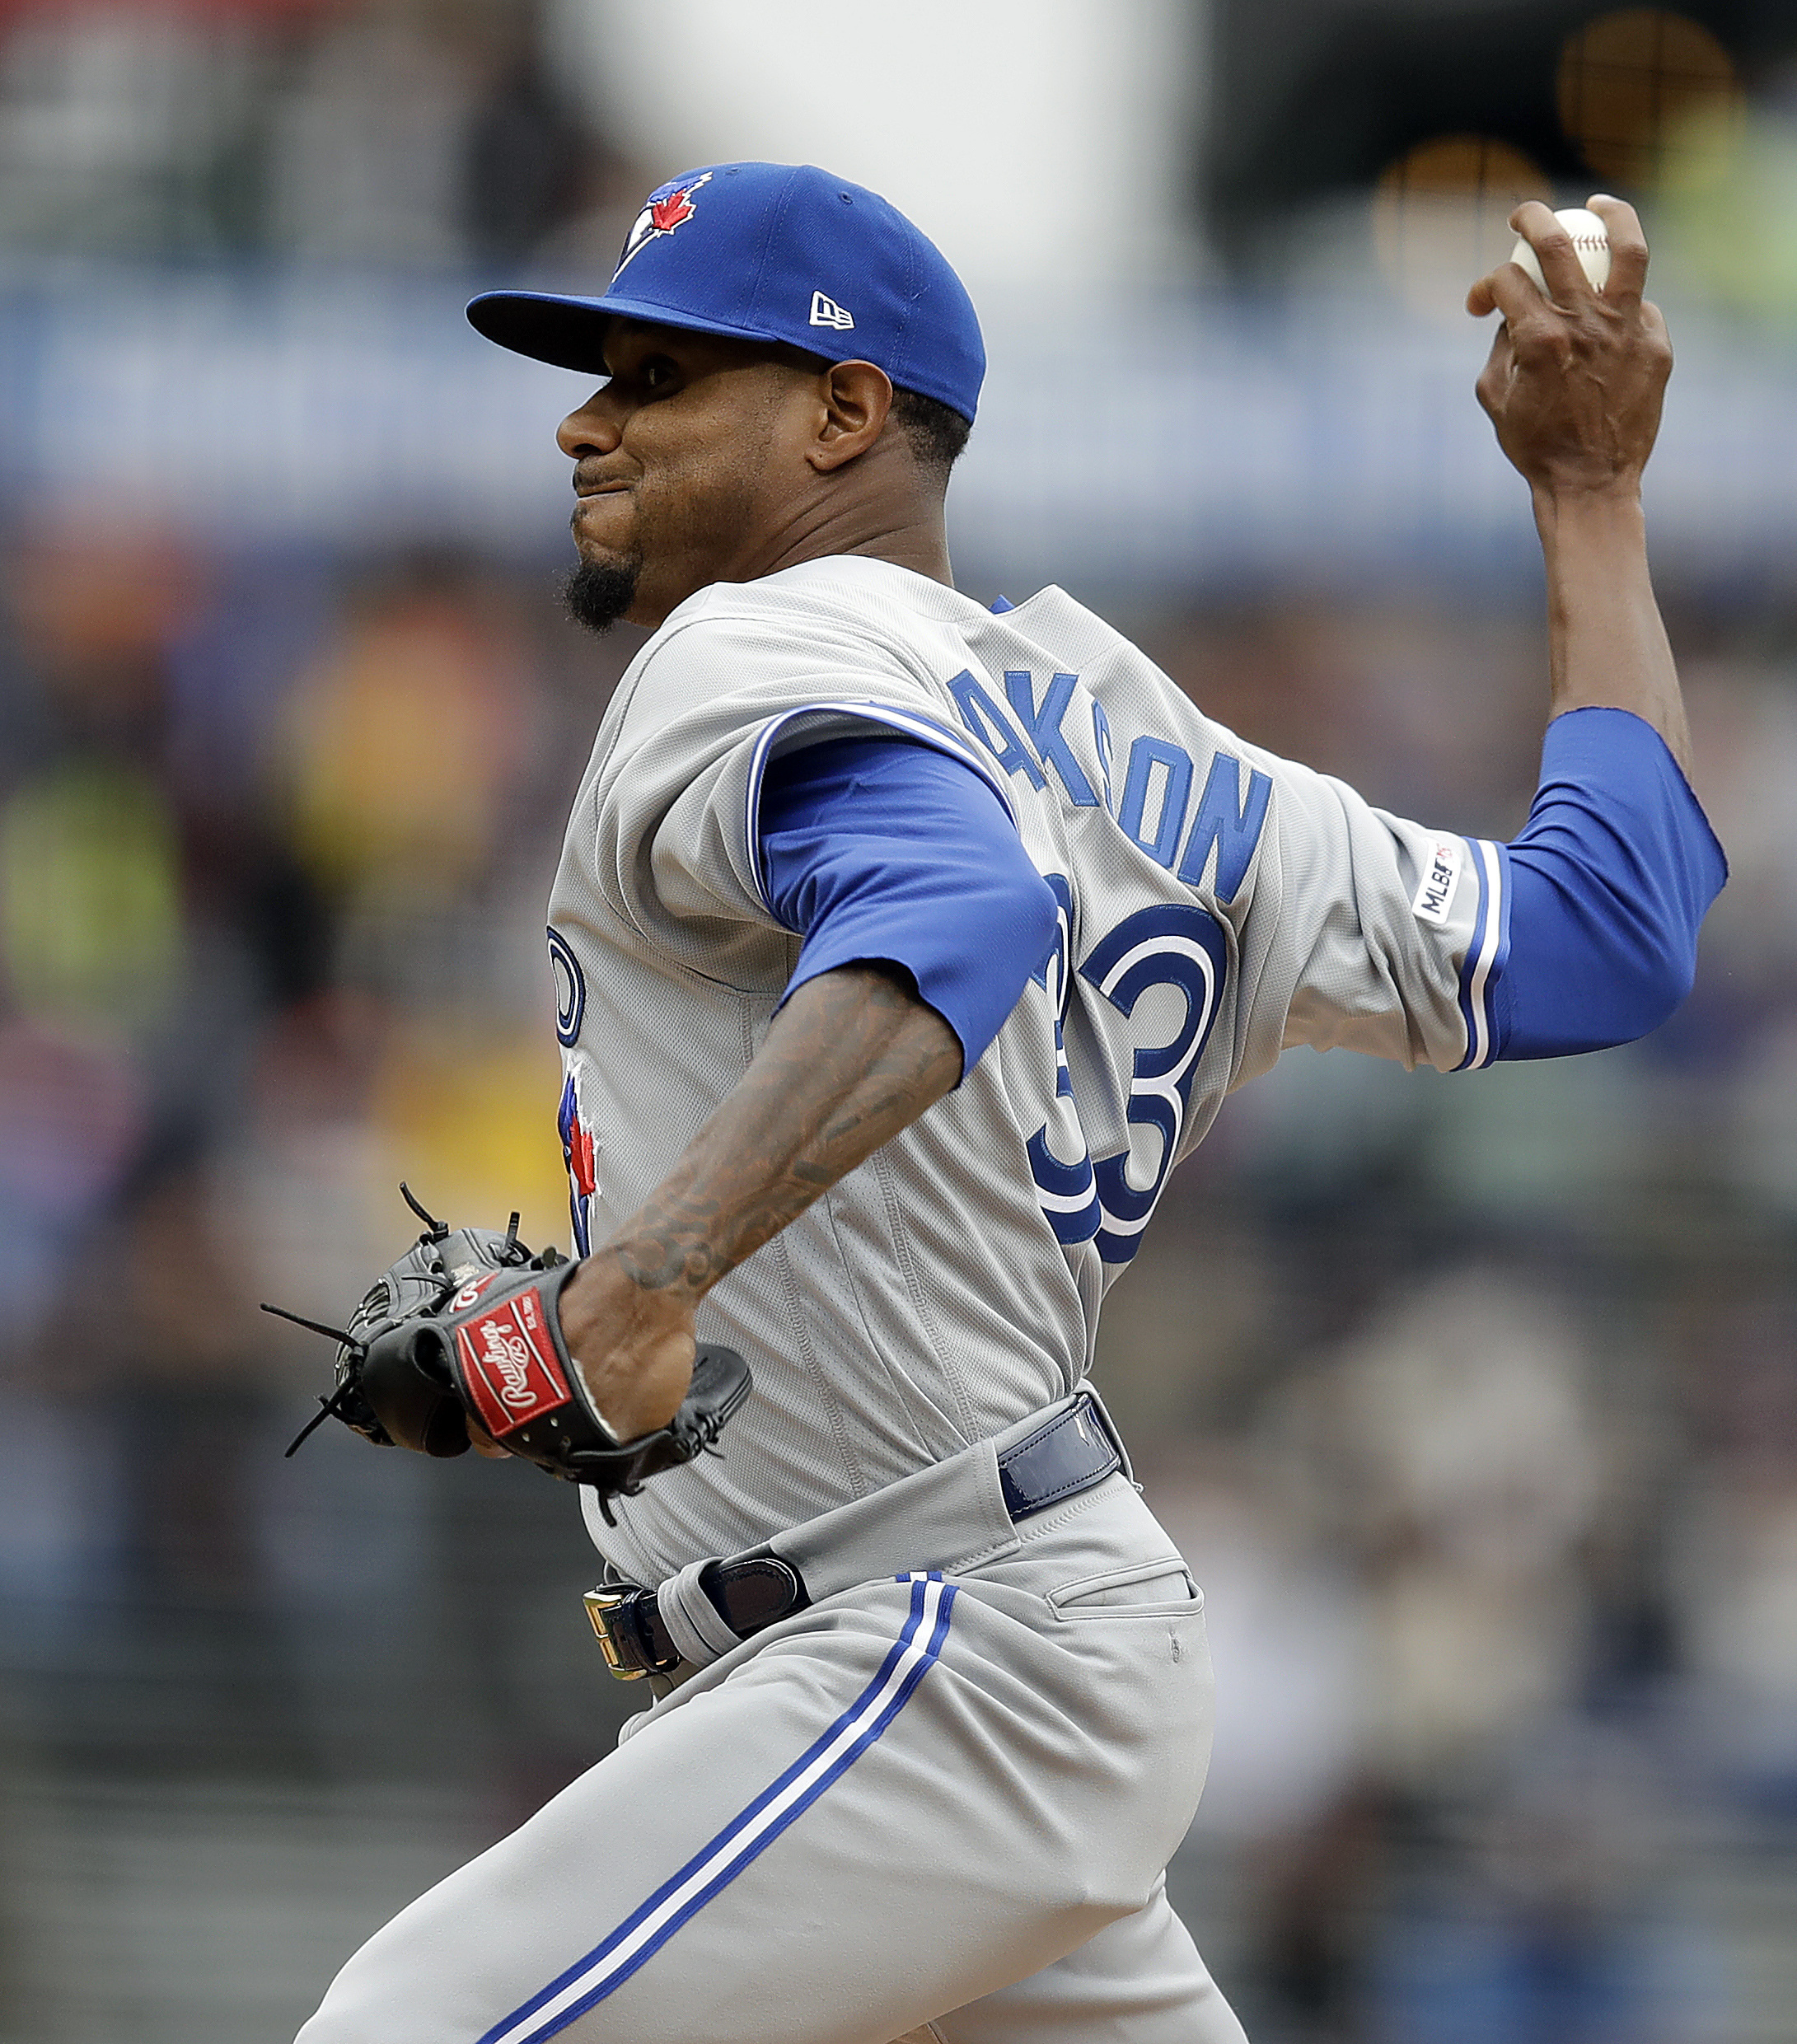 Jackson suits up for record 14th team, Jays lose to Giants